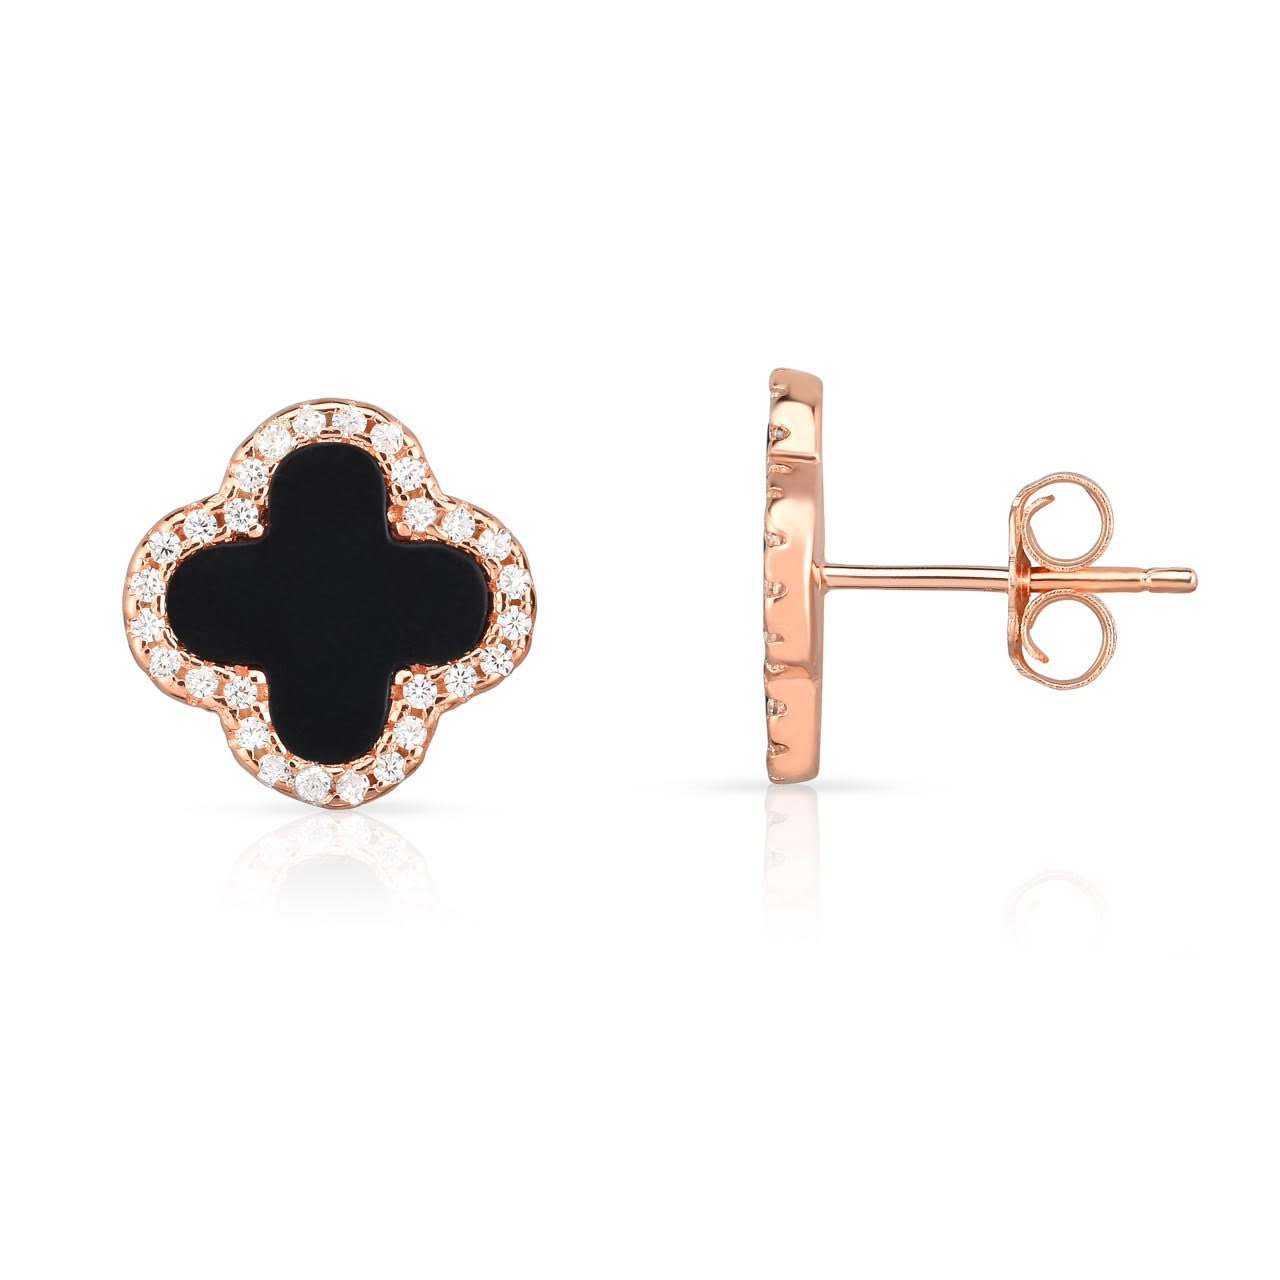 62666505a Amazon.com: Sterling Silver Black Onyx And Cubic Zirconia Four Leaf Clover  Post Earrings. (14K Rose Gold Plated): Jewelry